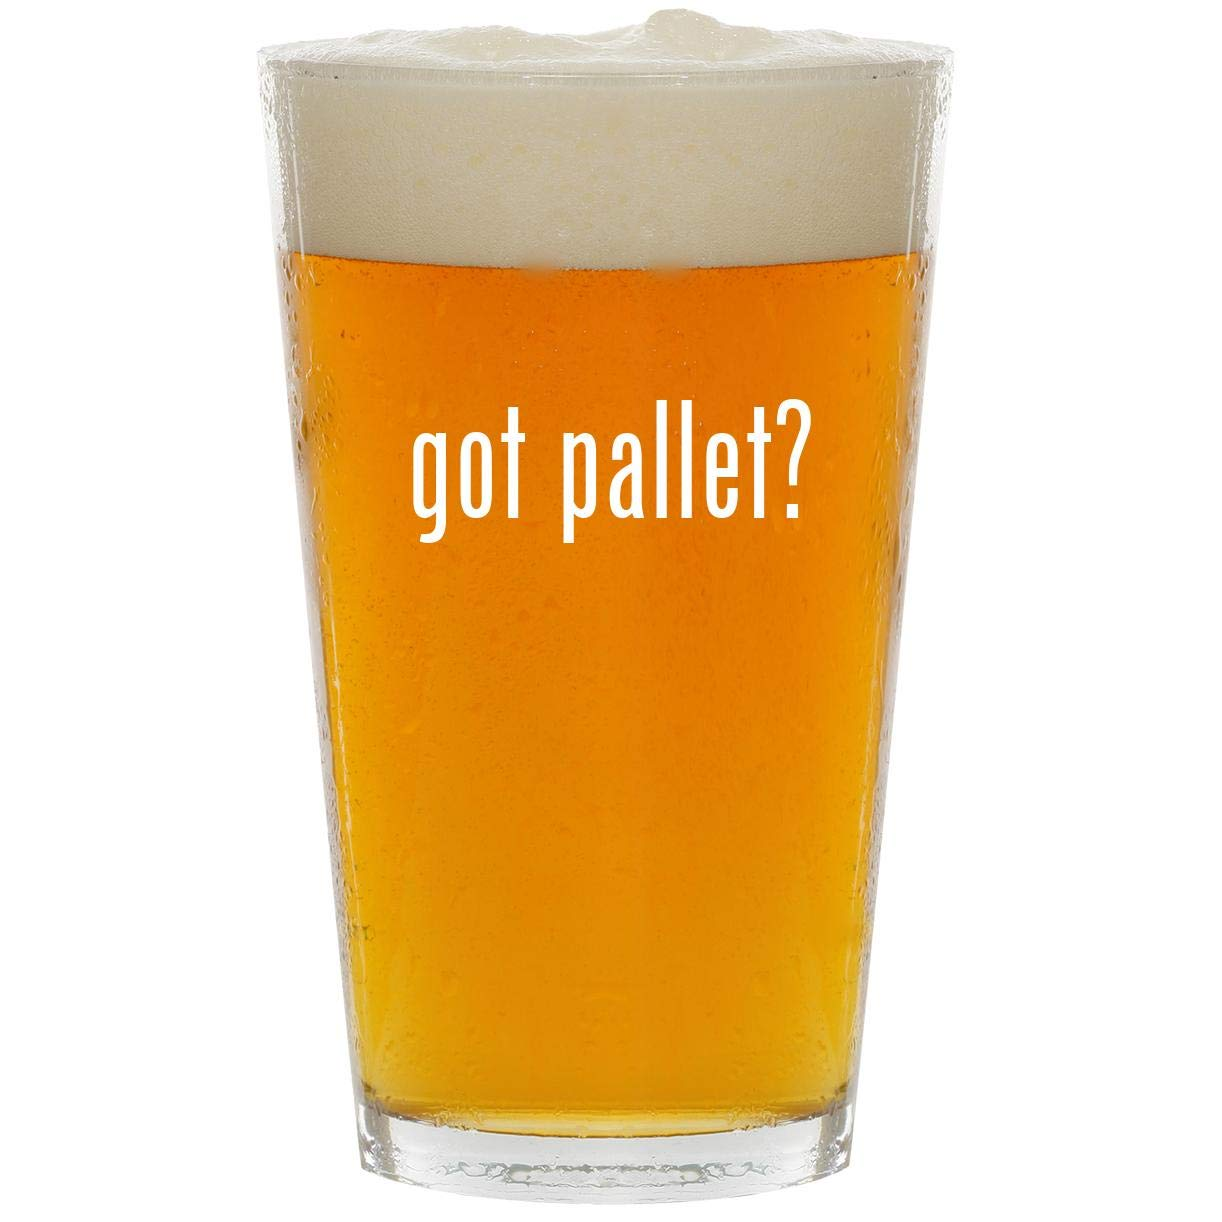 got pallet? - Glass 16oz Beer Pint